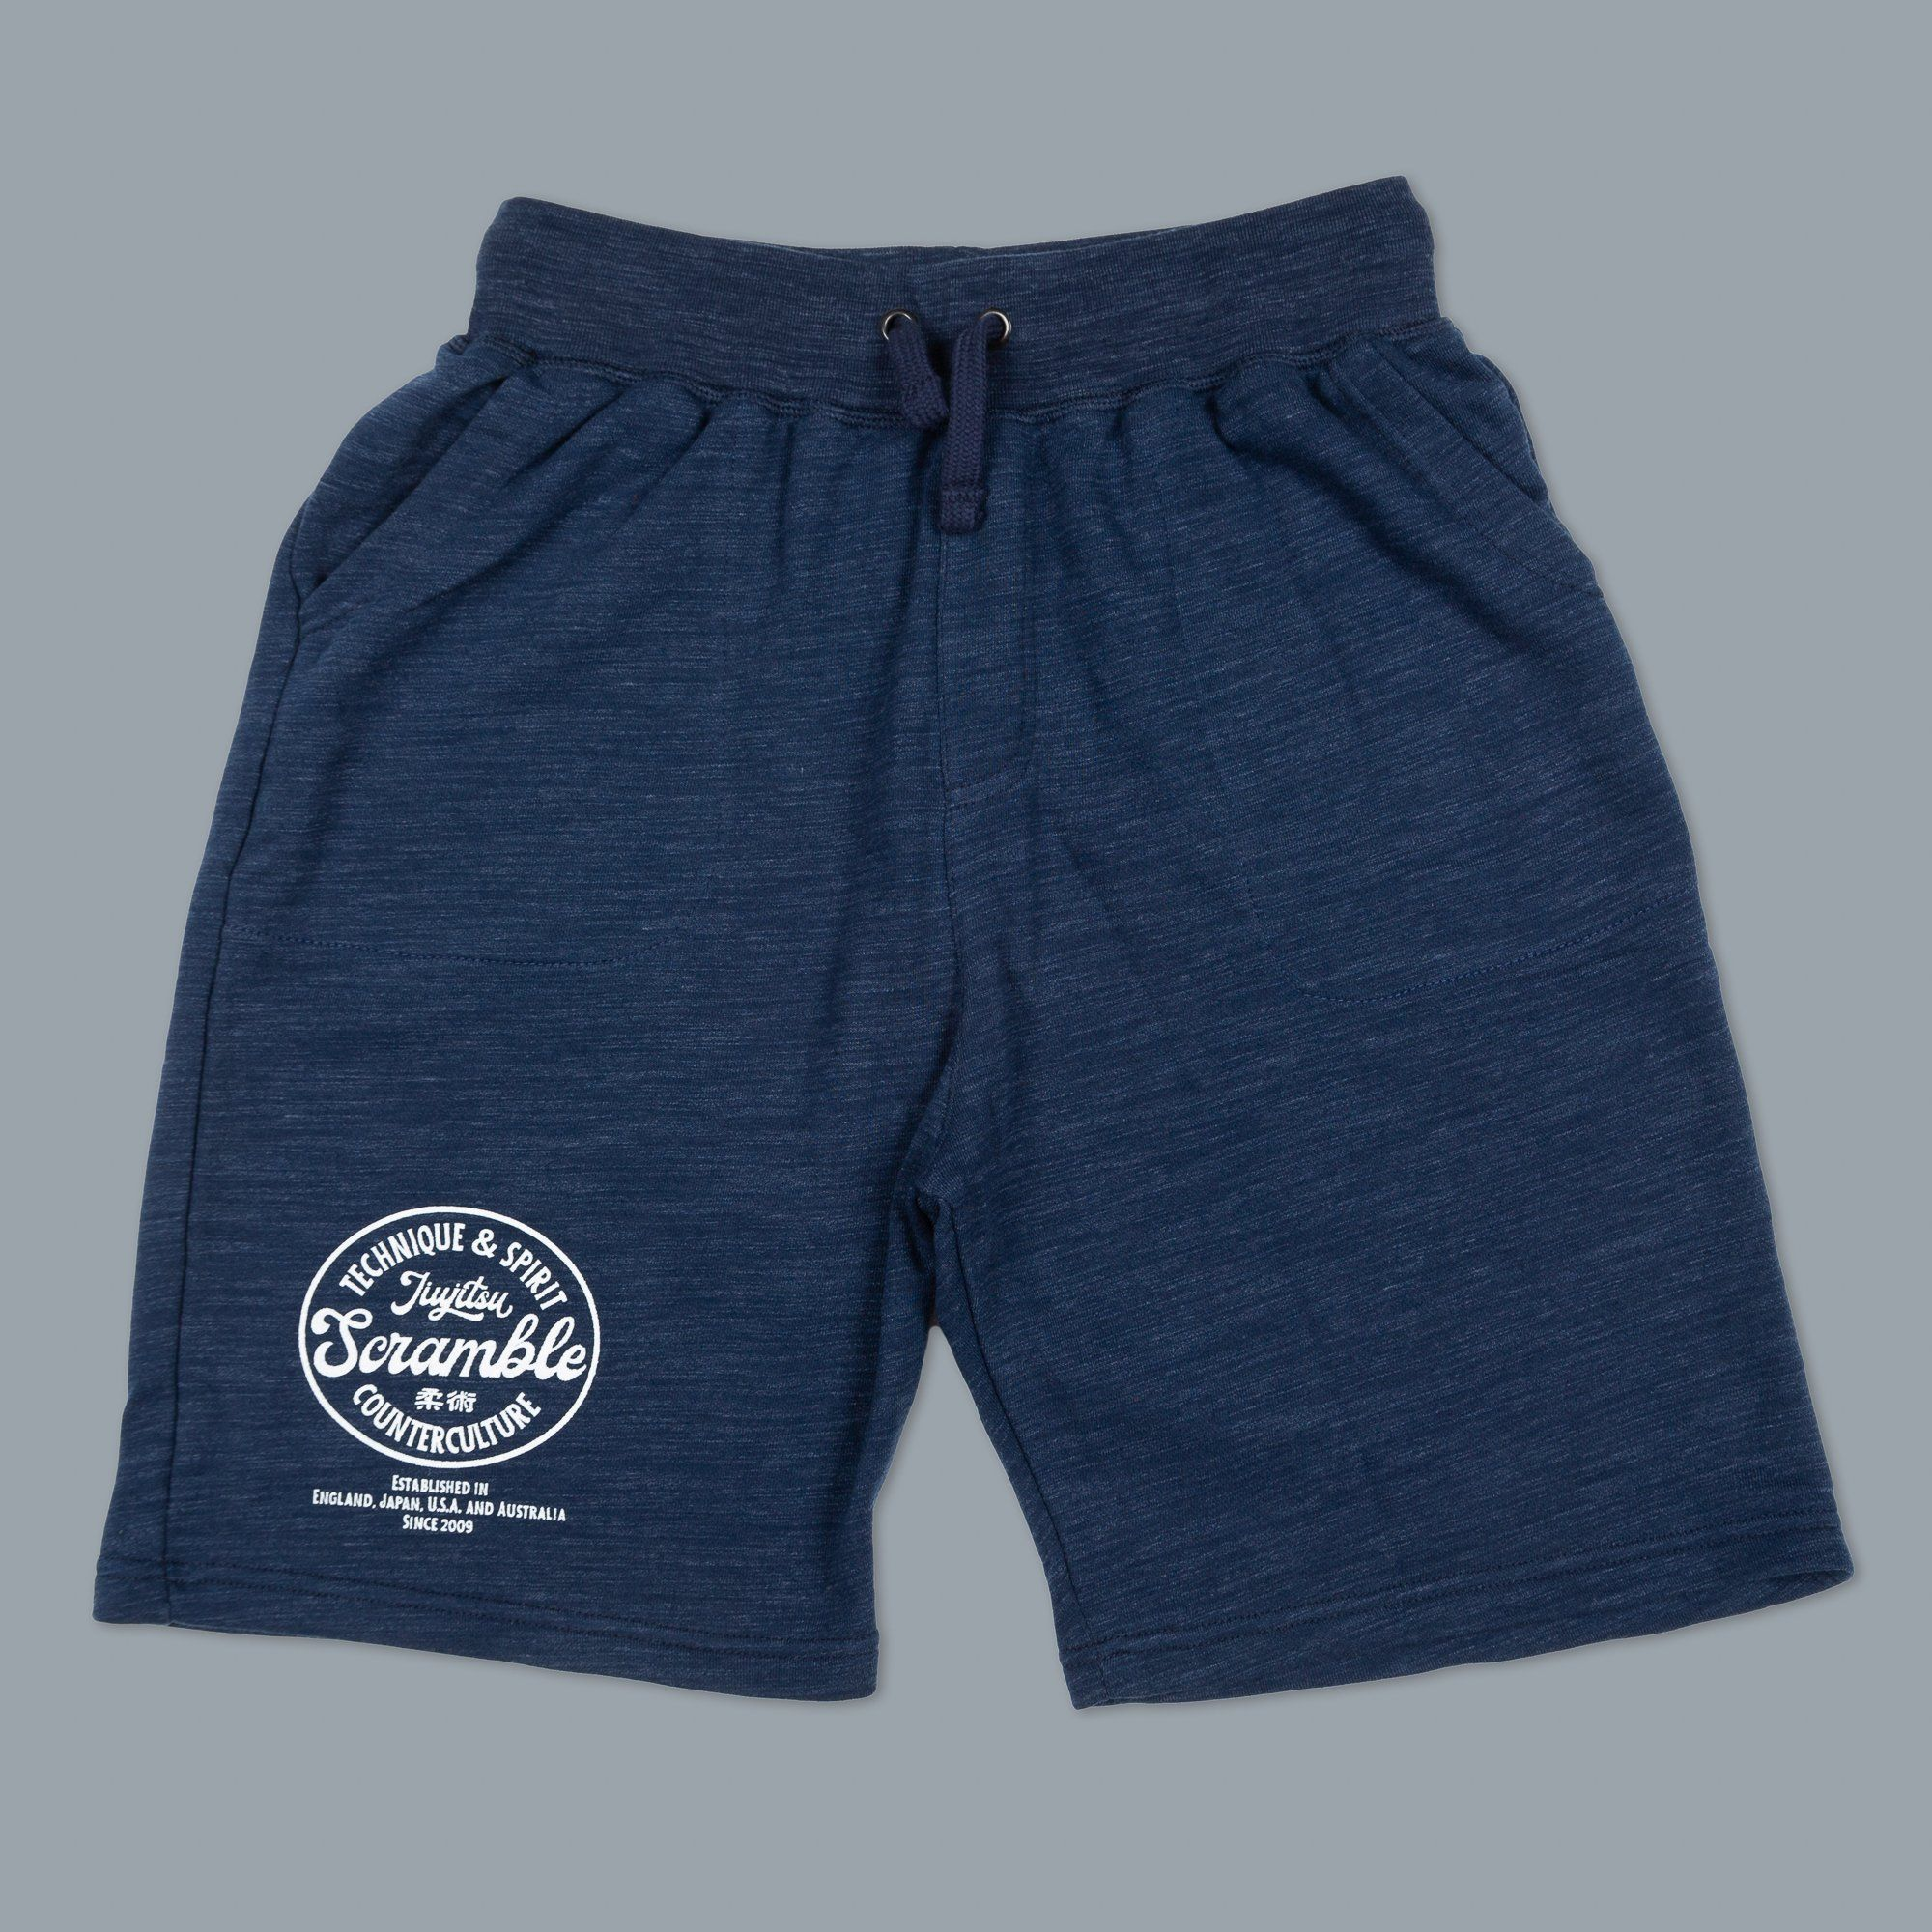 Scramble Technique & Spirit Casual Shorts - Navy